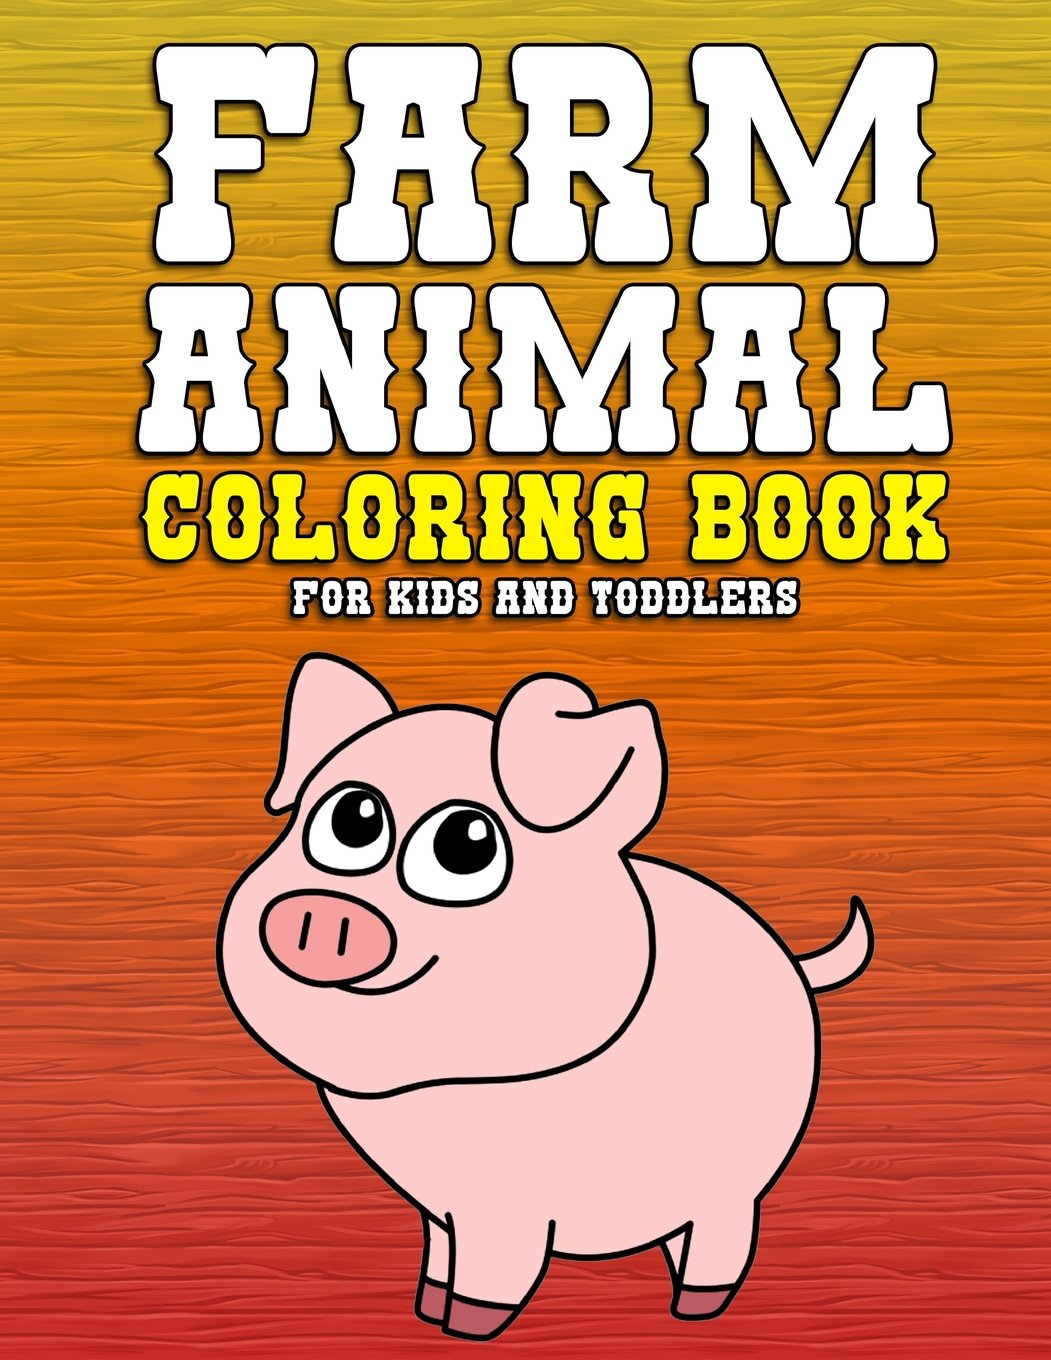 Farm Animal Coloring Book for Kids and Toddlers: A Cute, Simple and Easy Toddler Activity Book with Fun Coloring Sheets (Includes Pigs, Cows, Goats, Sheep, Chickens and More!)